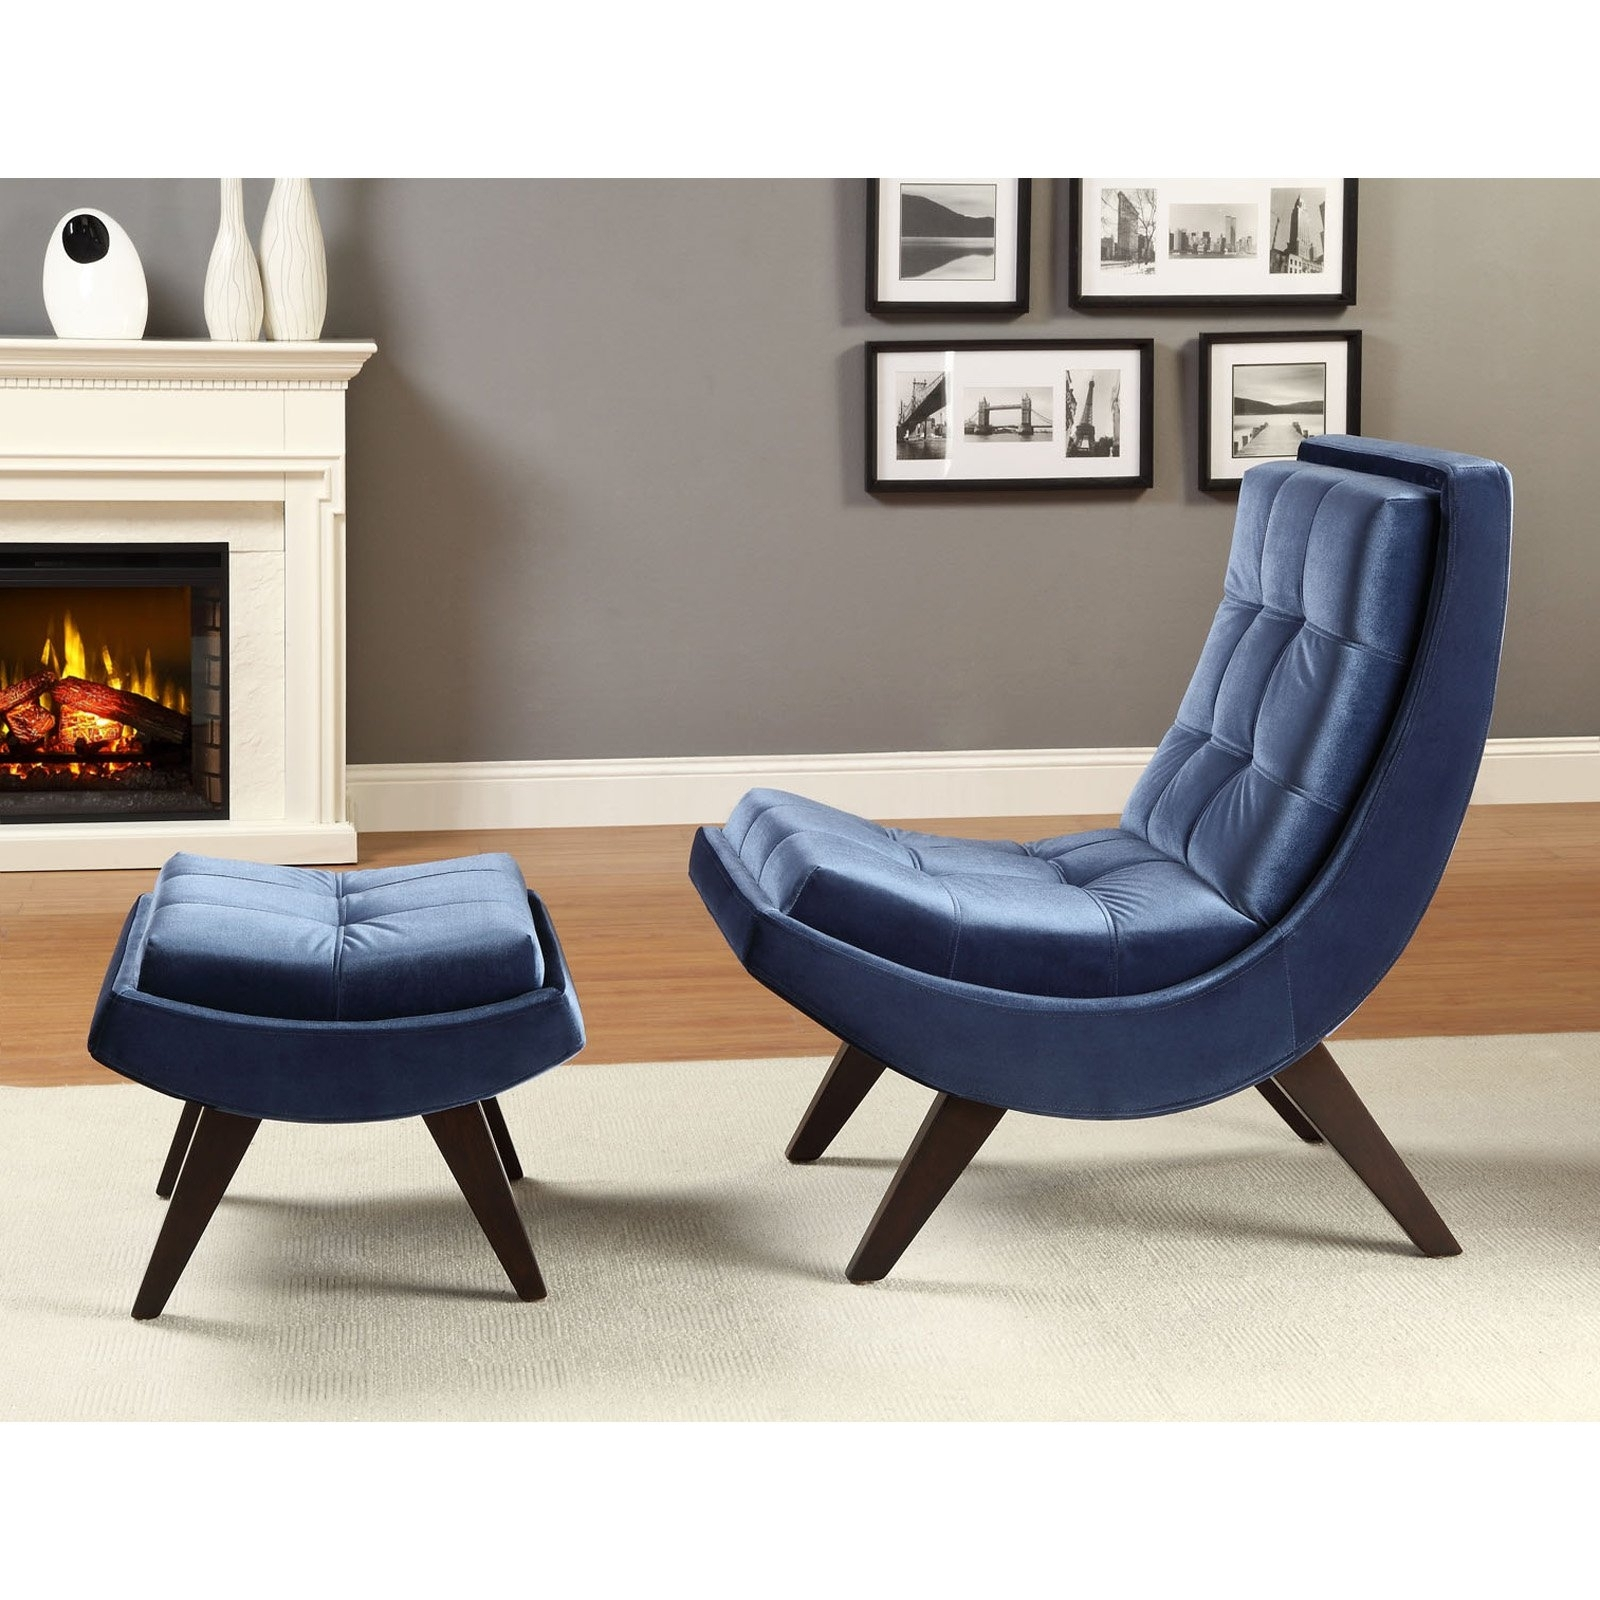 Famous Chaise Lounge Chairs With Ottoman Within Chaise Lounge Chair With Ottoman • Lounge Chairs Ideas (View 5 of 15)